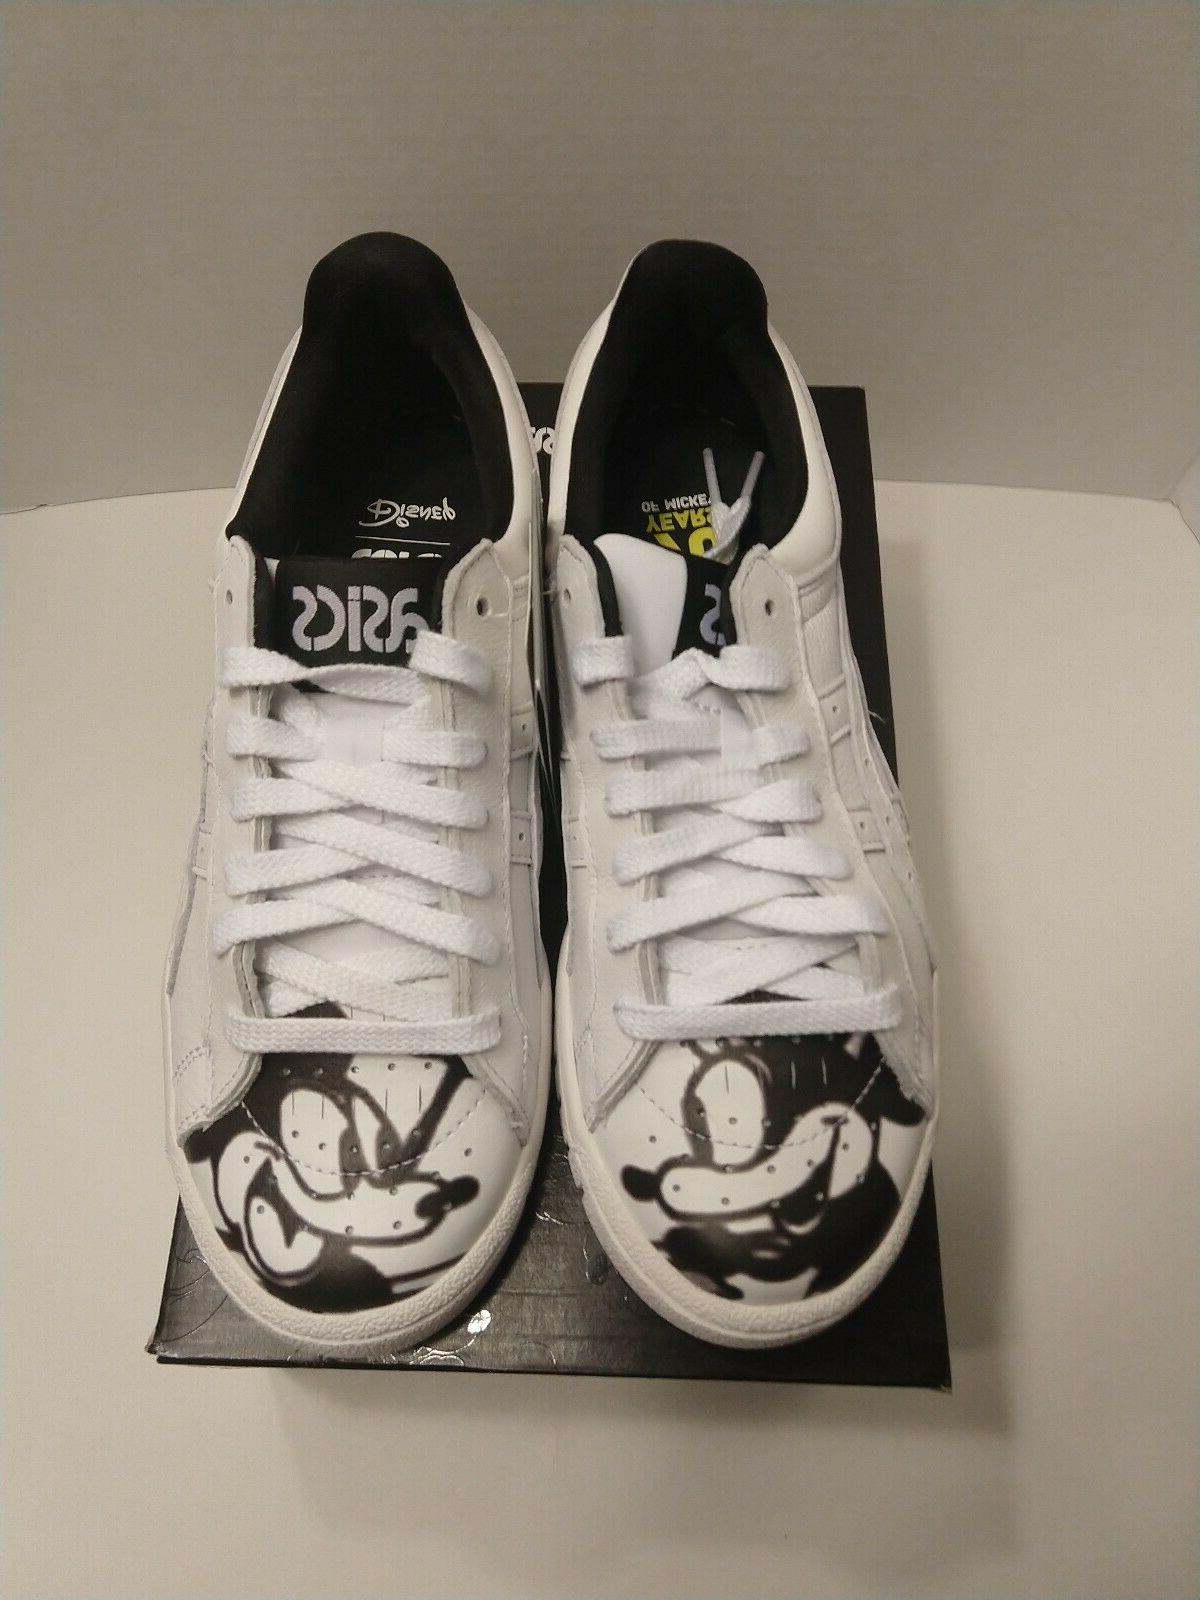 90th Anniversary Mouse sneakers